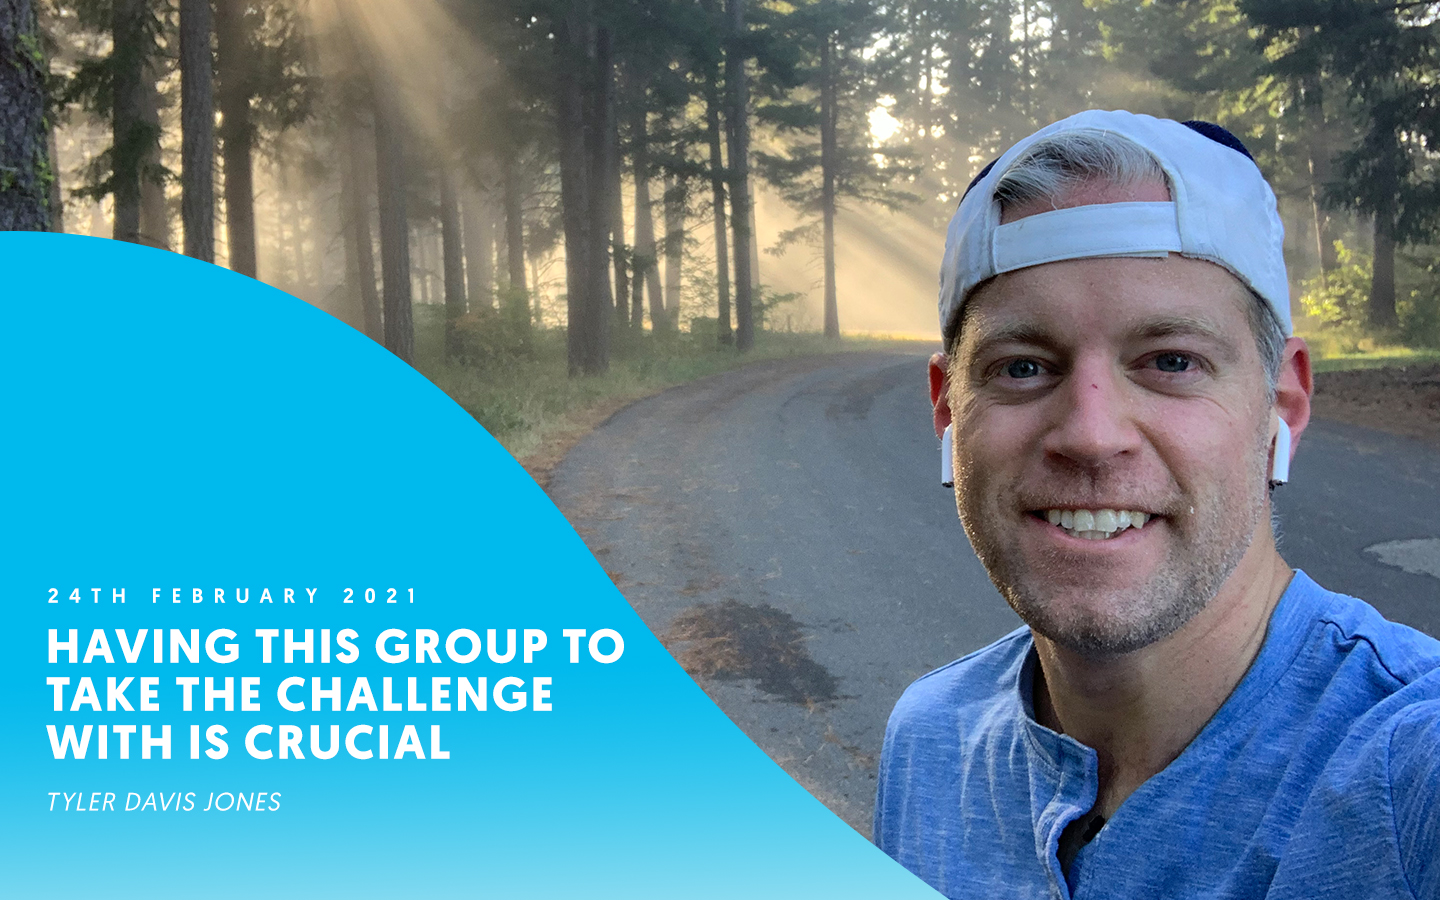 Having this group to take the challenge with is crucial – Tyler Davis Jones